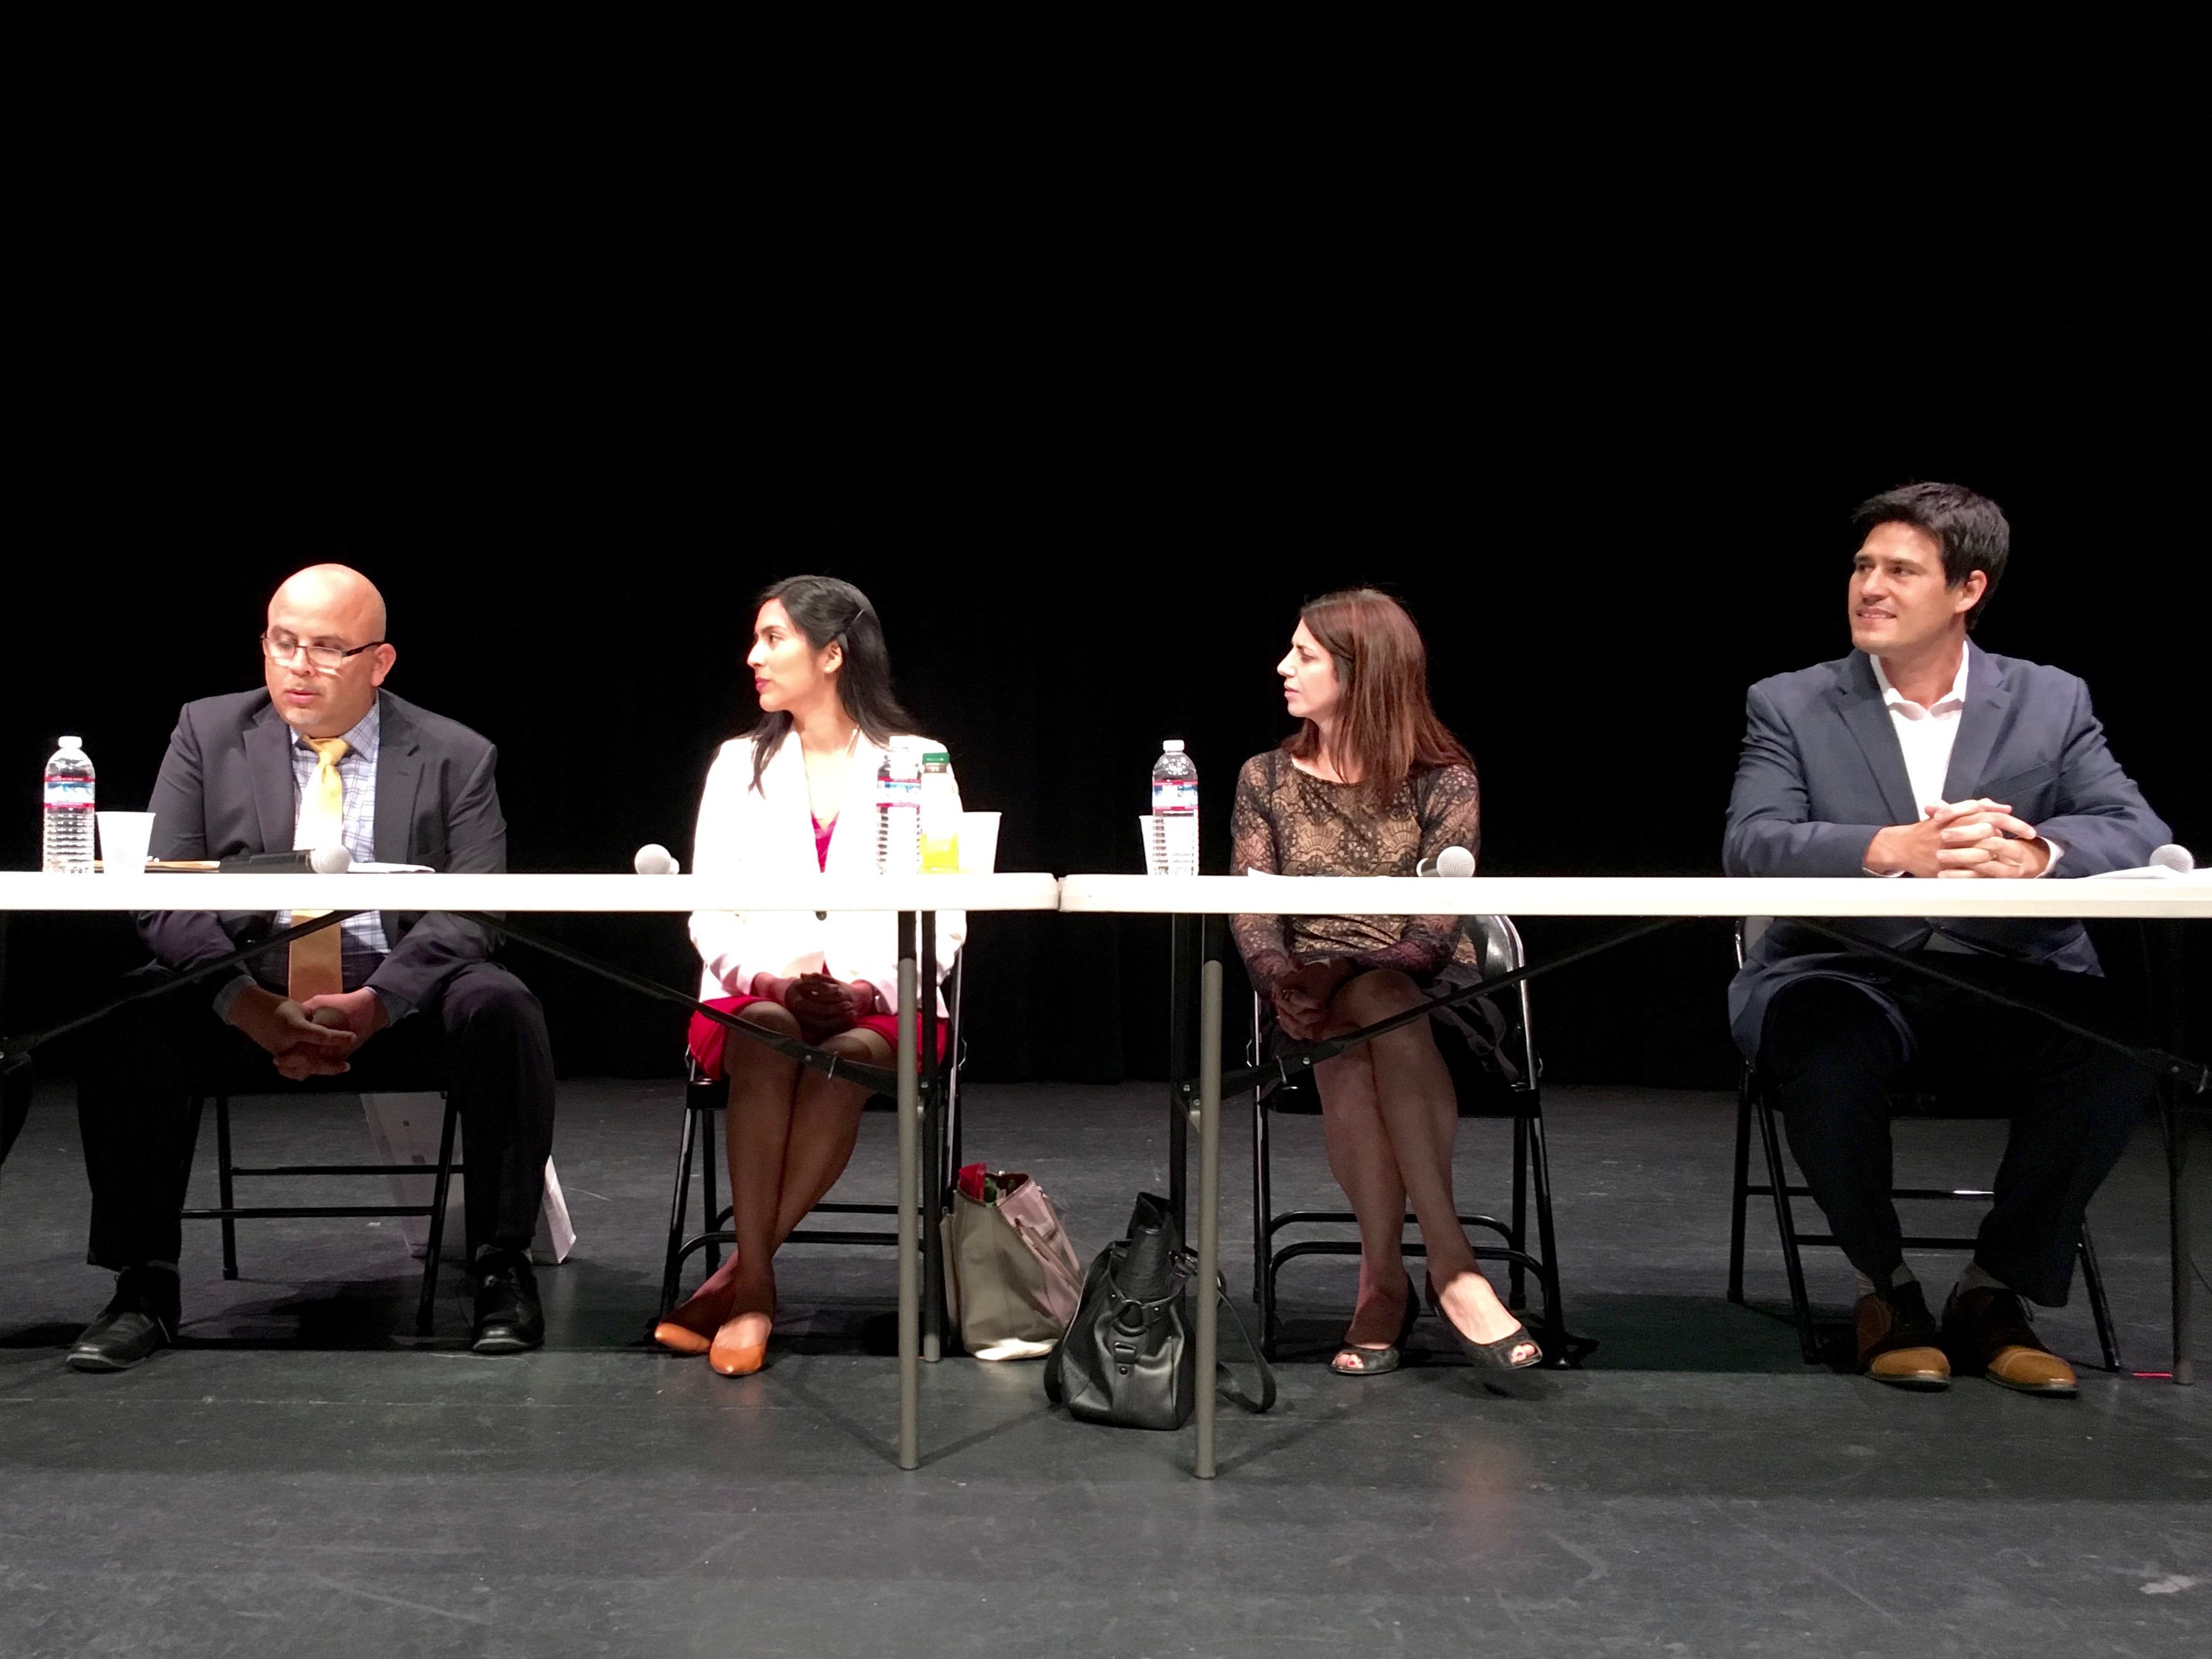 In SF Mission Debate, Candidates Trade Barbs